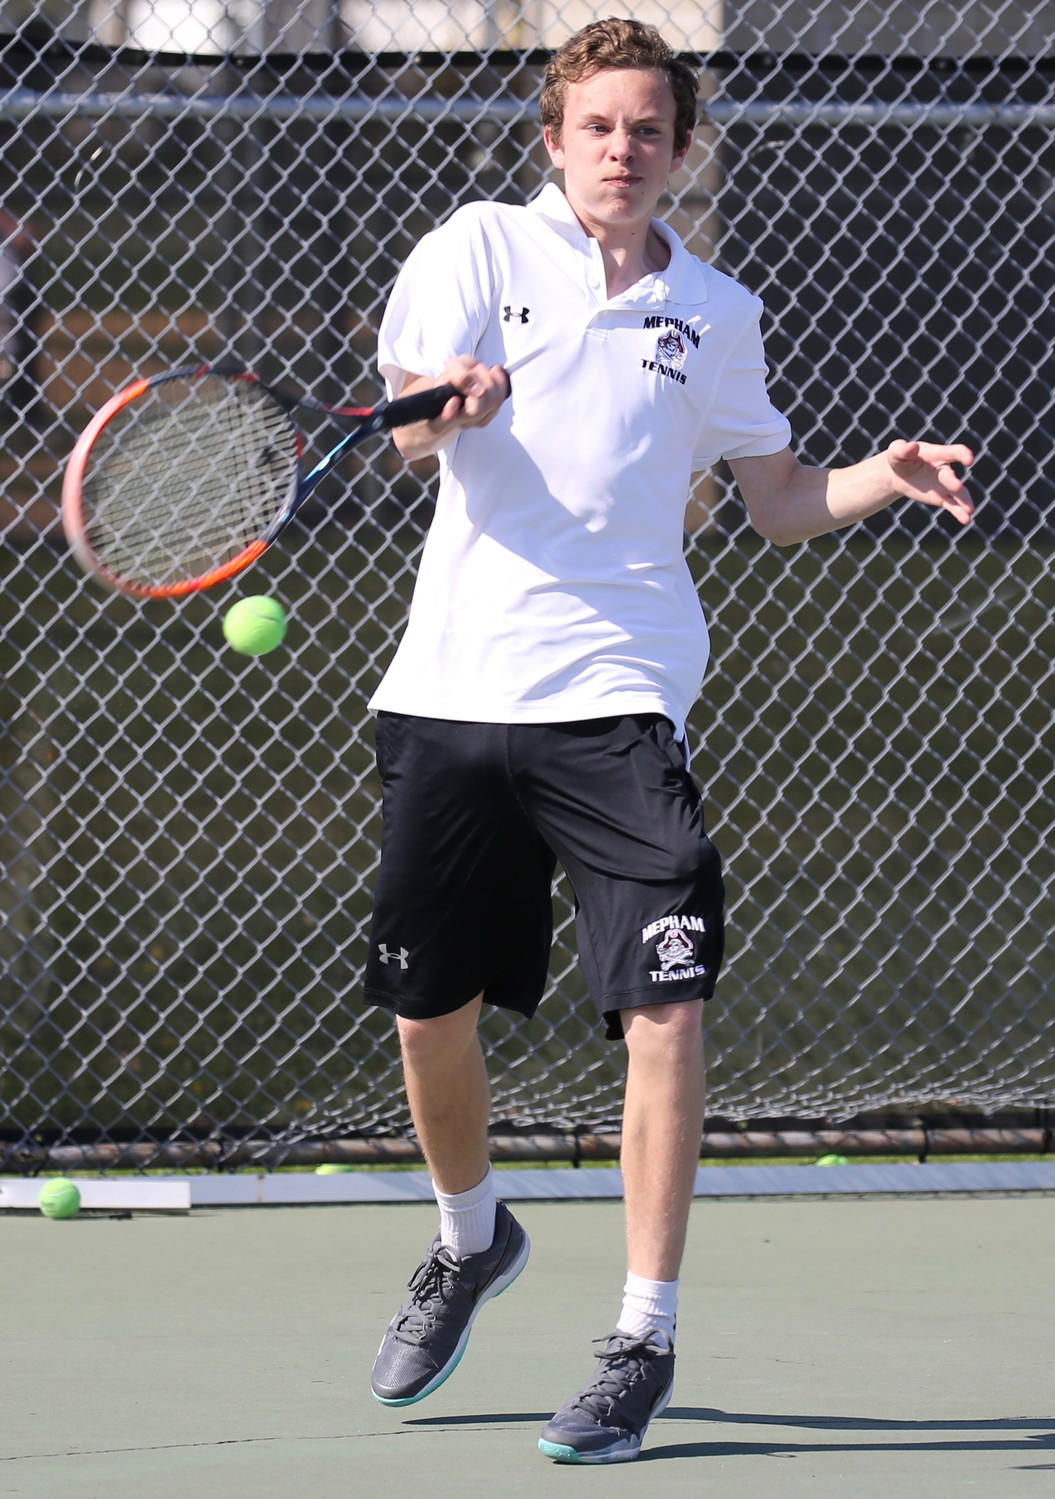 Jesse Schiffman played in the No. 1 singles spot for the Pirates, who captured the Conference 3B crown with a record of 13-1.